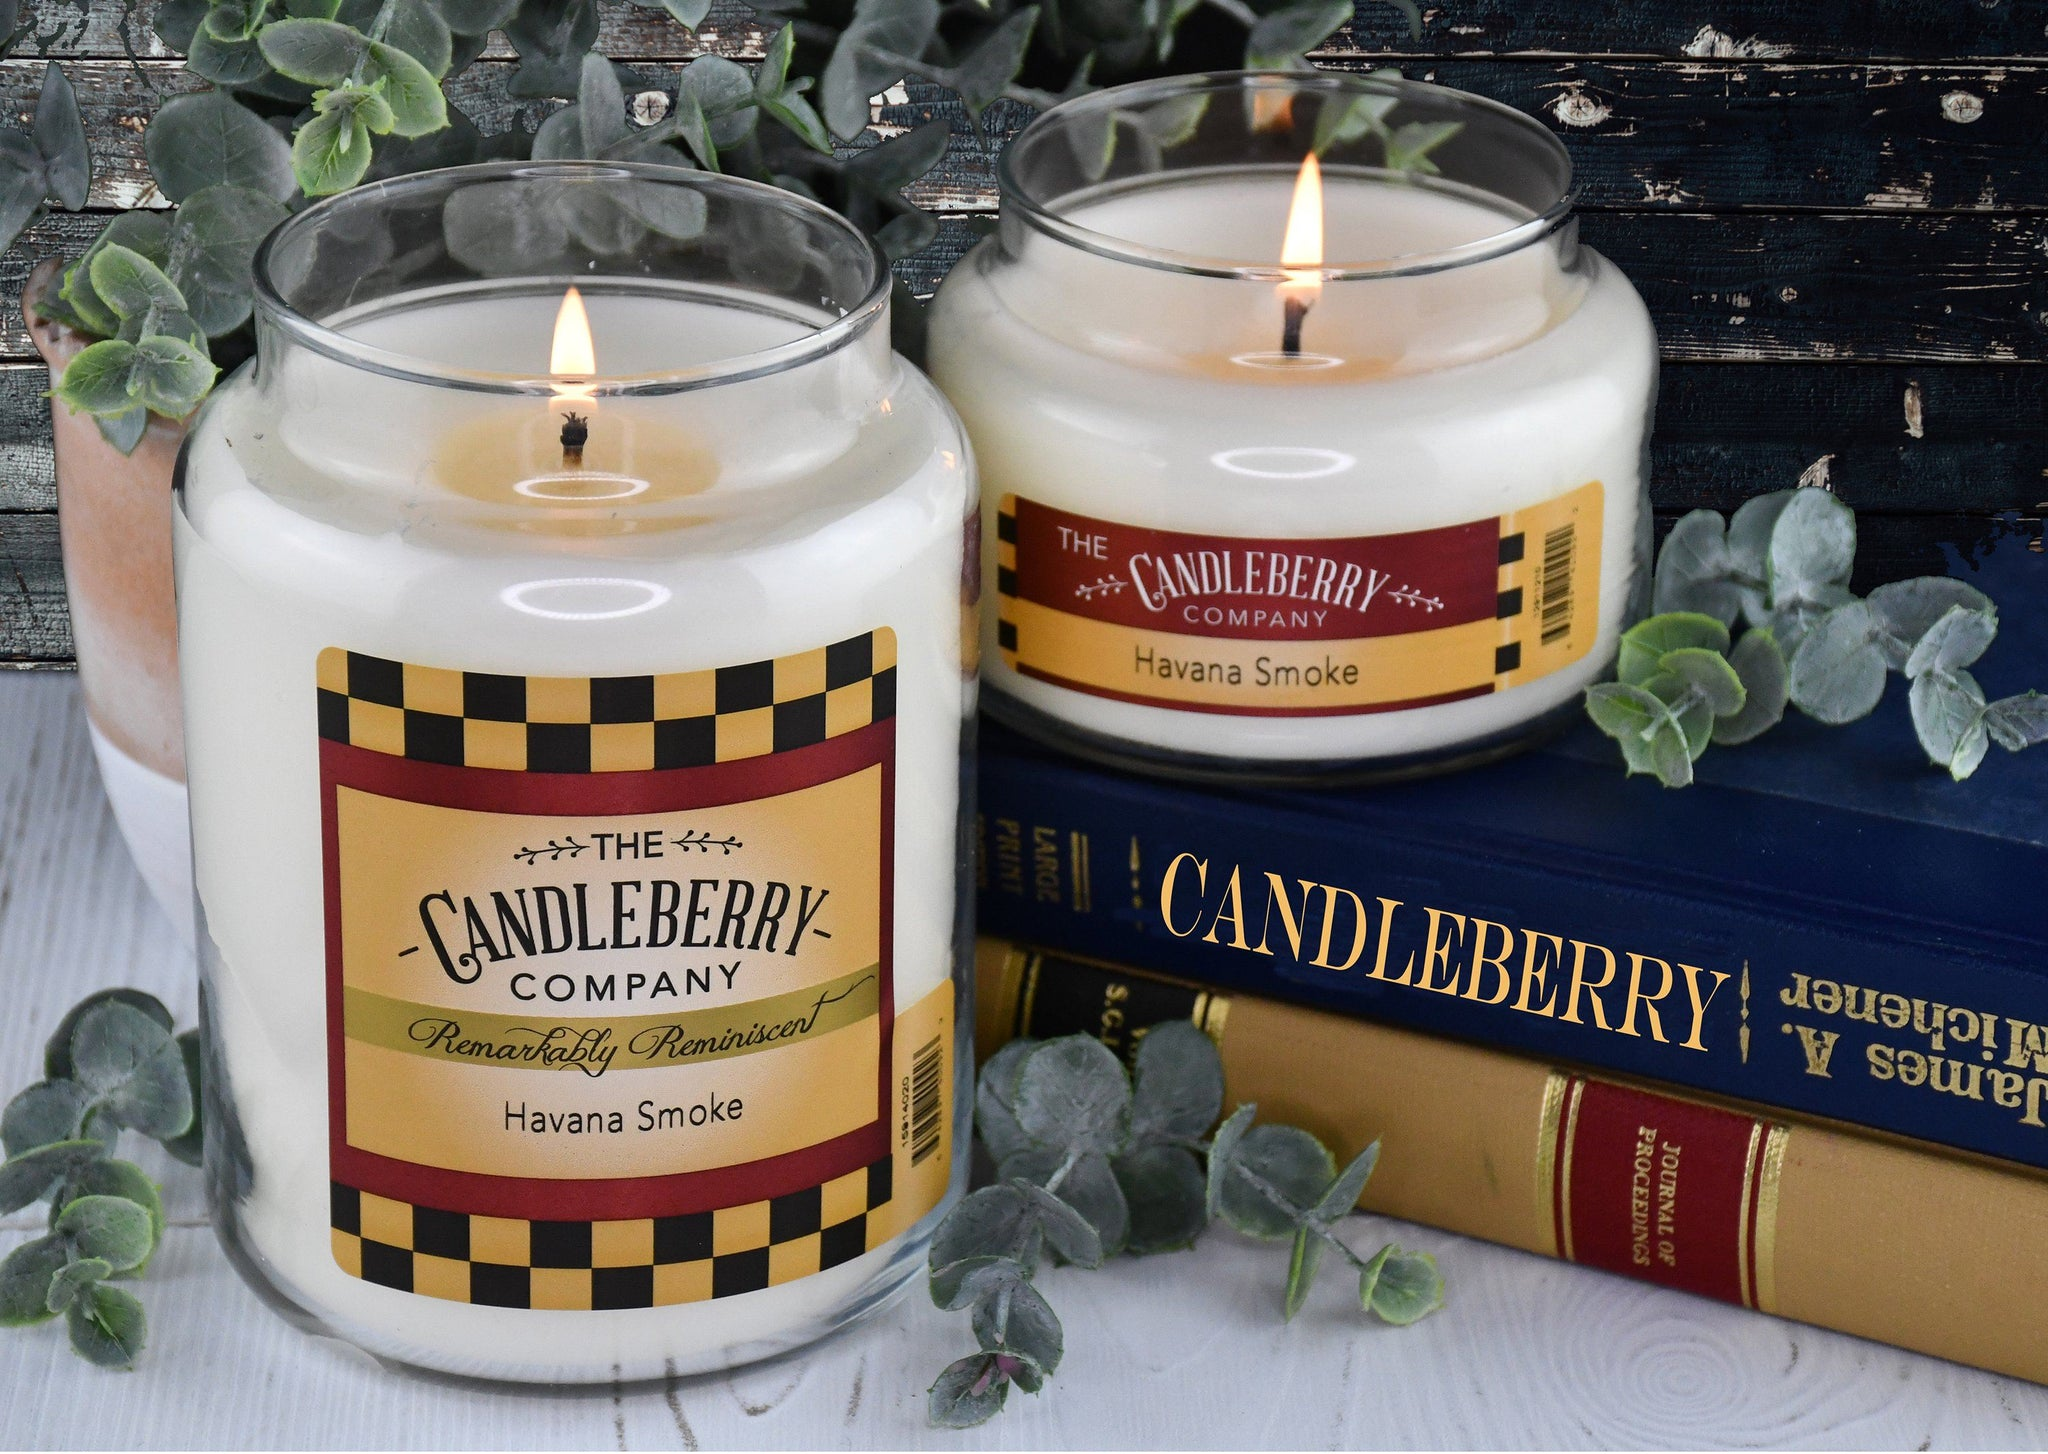 Havana Smoke™, 10 oz. Jar, Scented Candle 10 oz. Small Jar Candle The Candleberry Candle Company